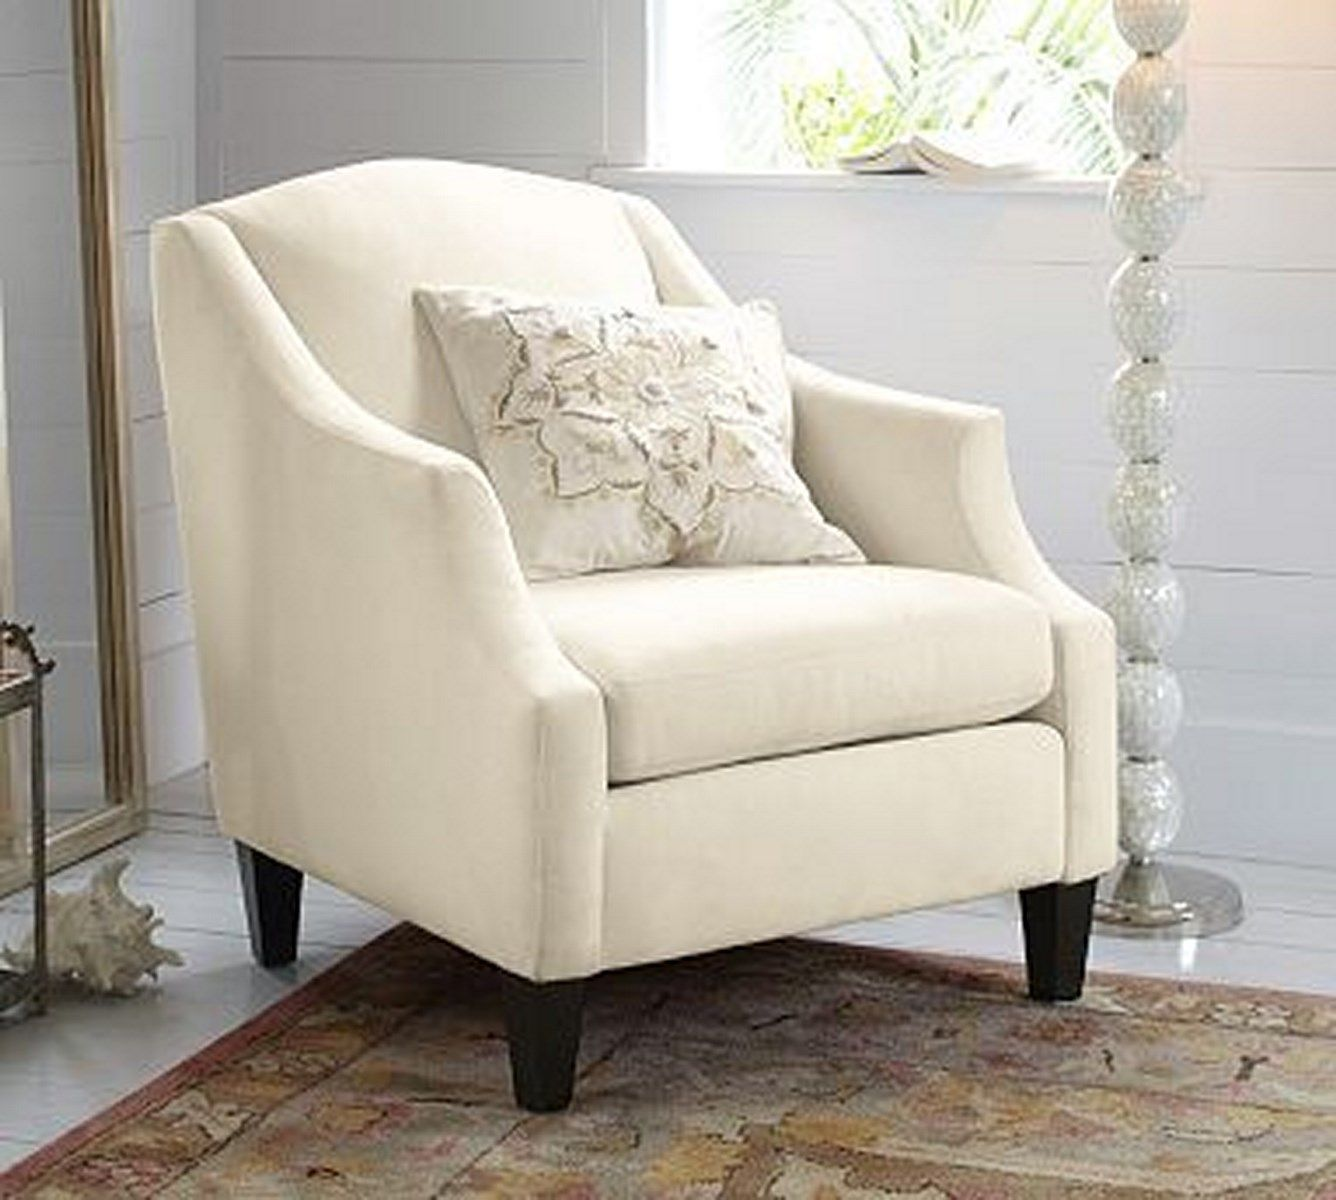 Bradshaw White Bedroom Armchair  Furniture, Armchair furniture